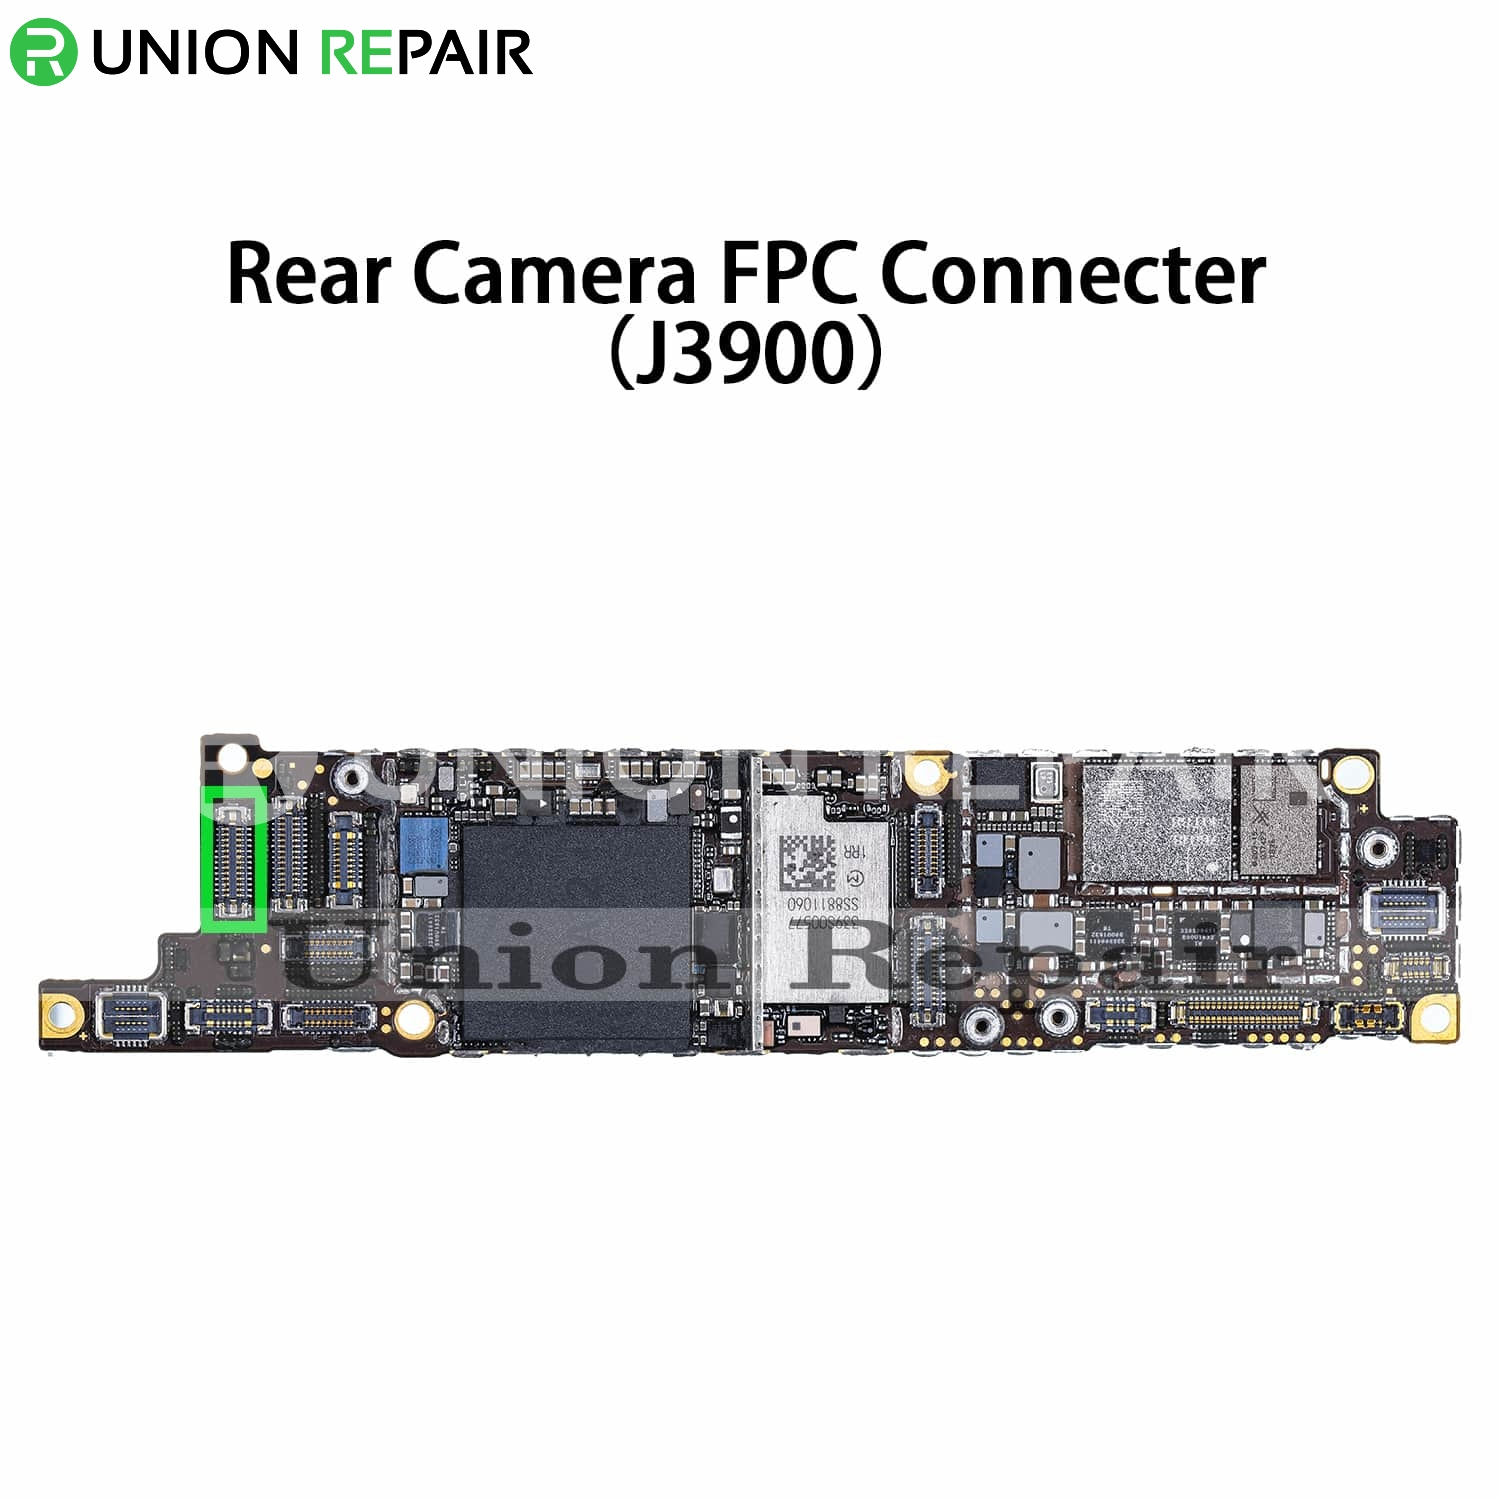 Replacement for iPhone XR Rear Camera Connector Port Onboard